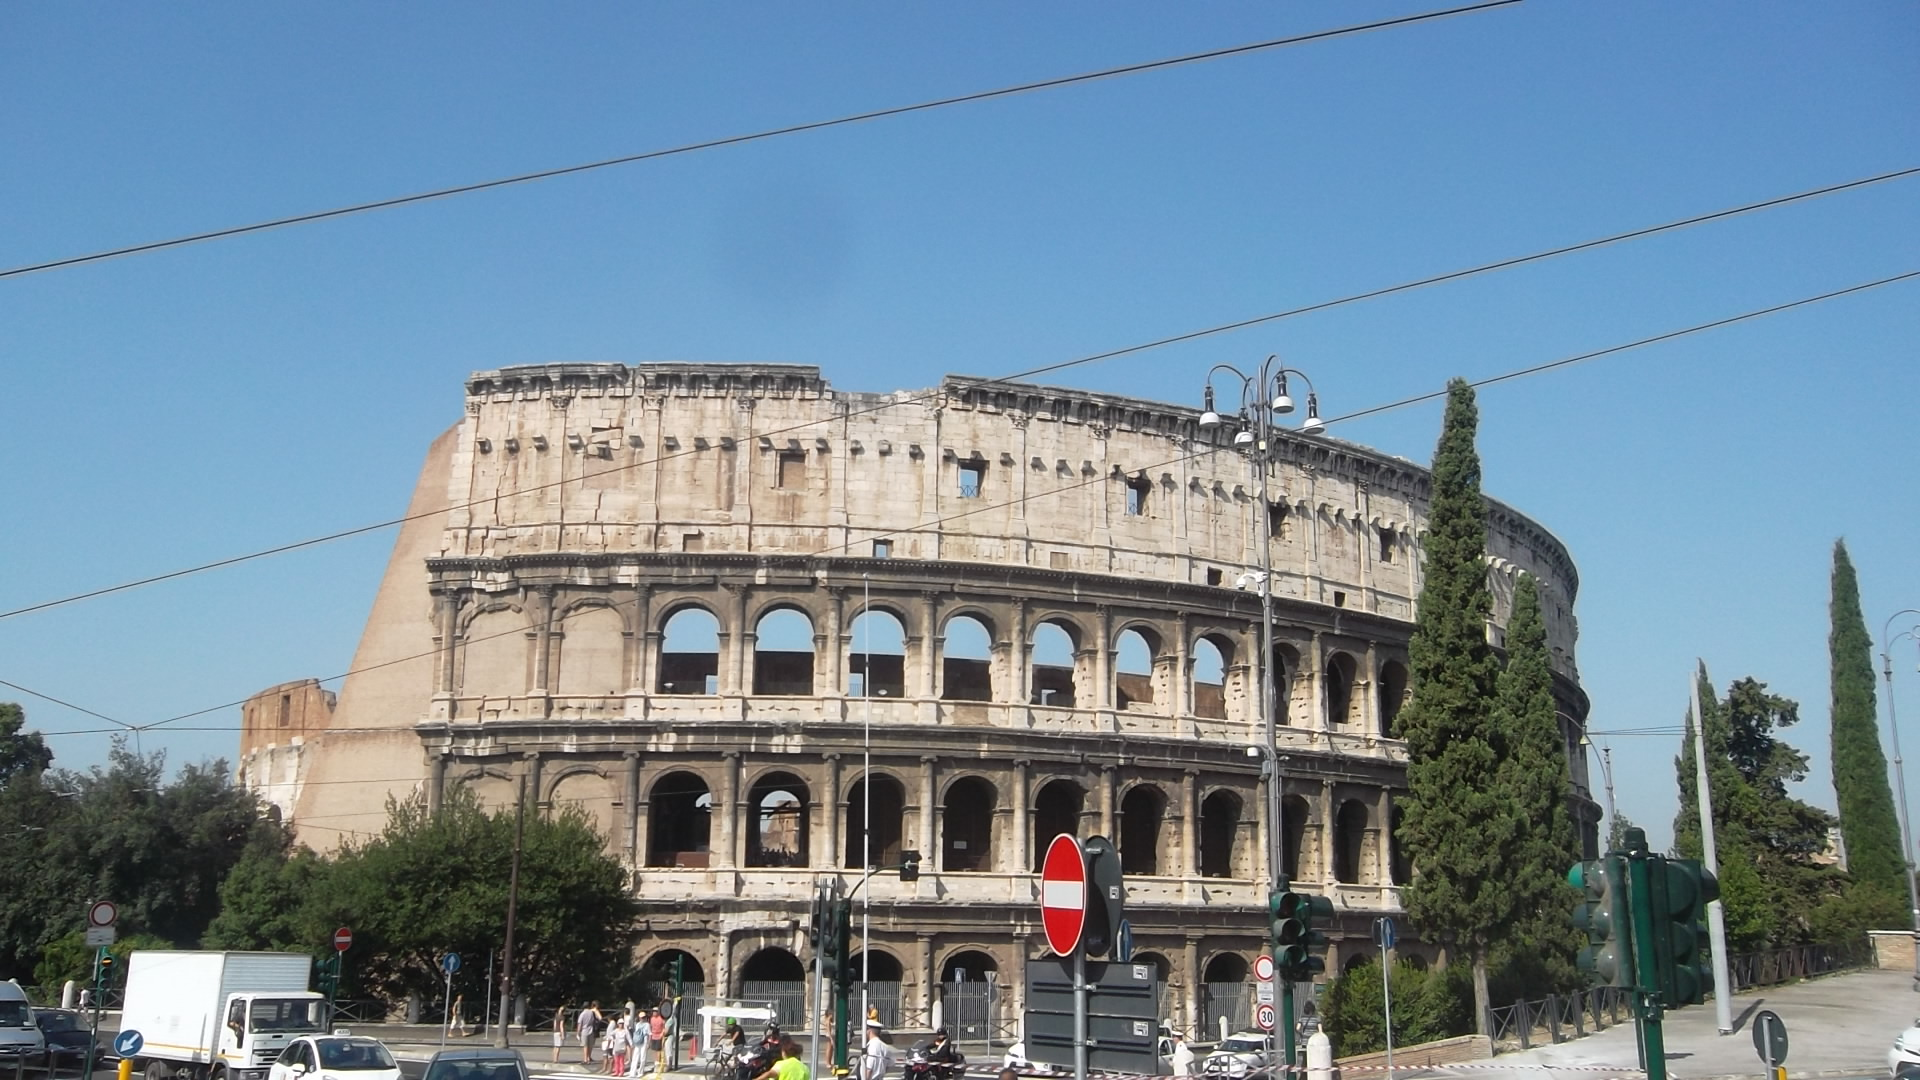 roma-colosseo-from-domus-aurea-aug13